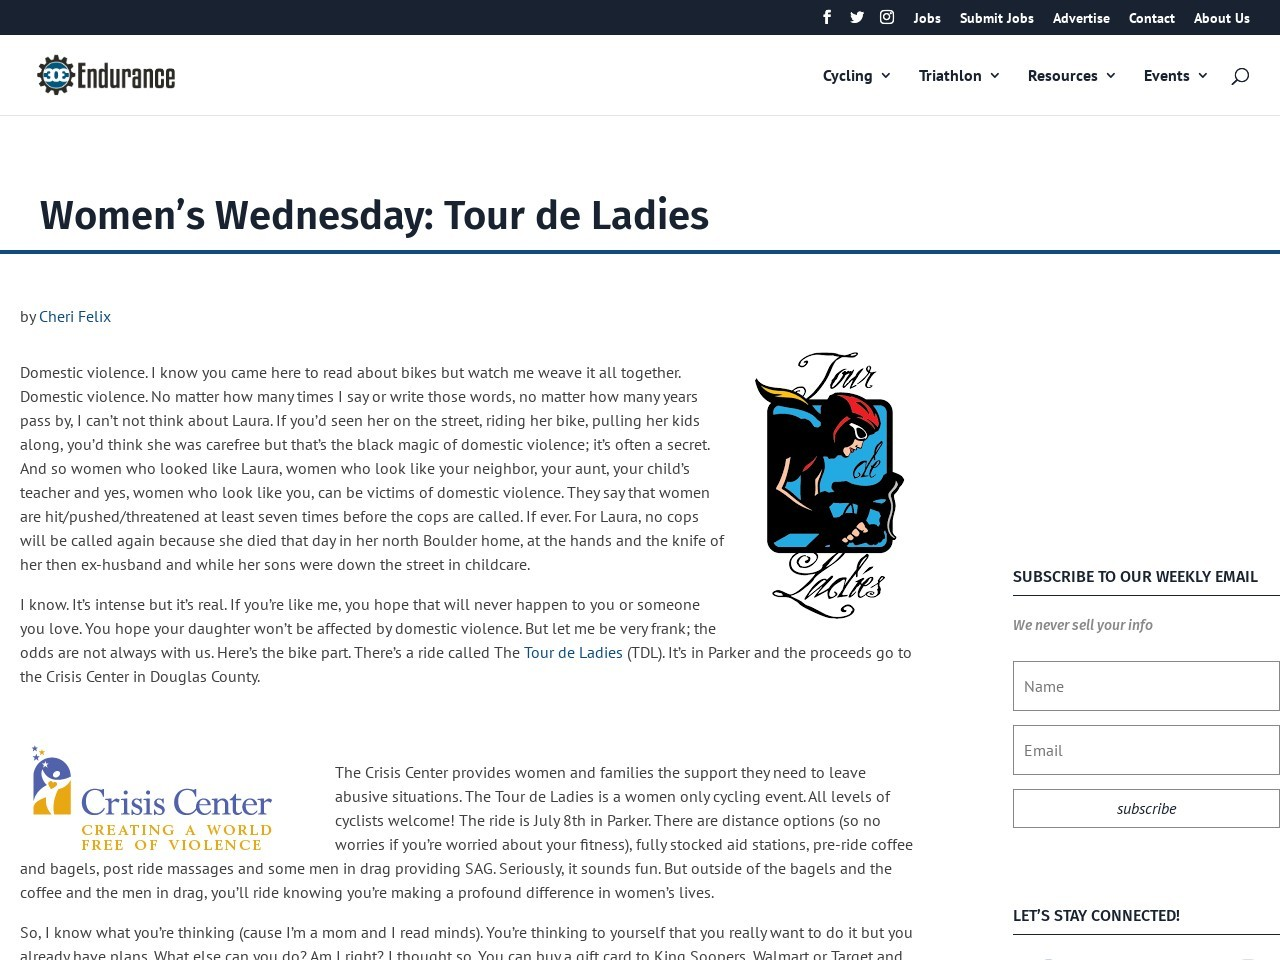 Women's Wednesday: Tour de Ladies